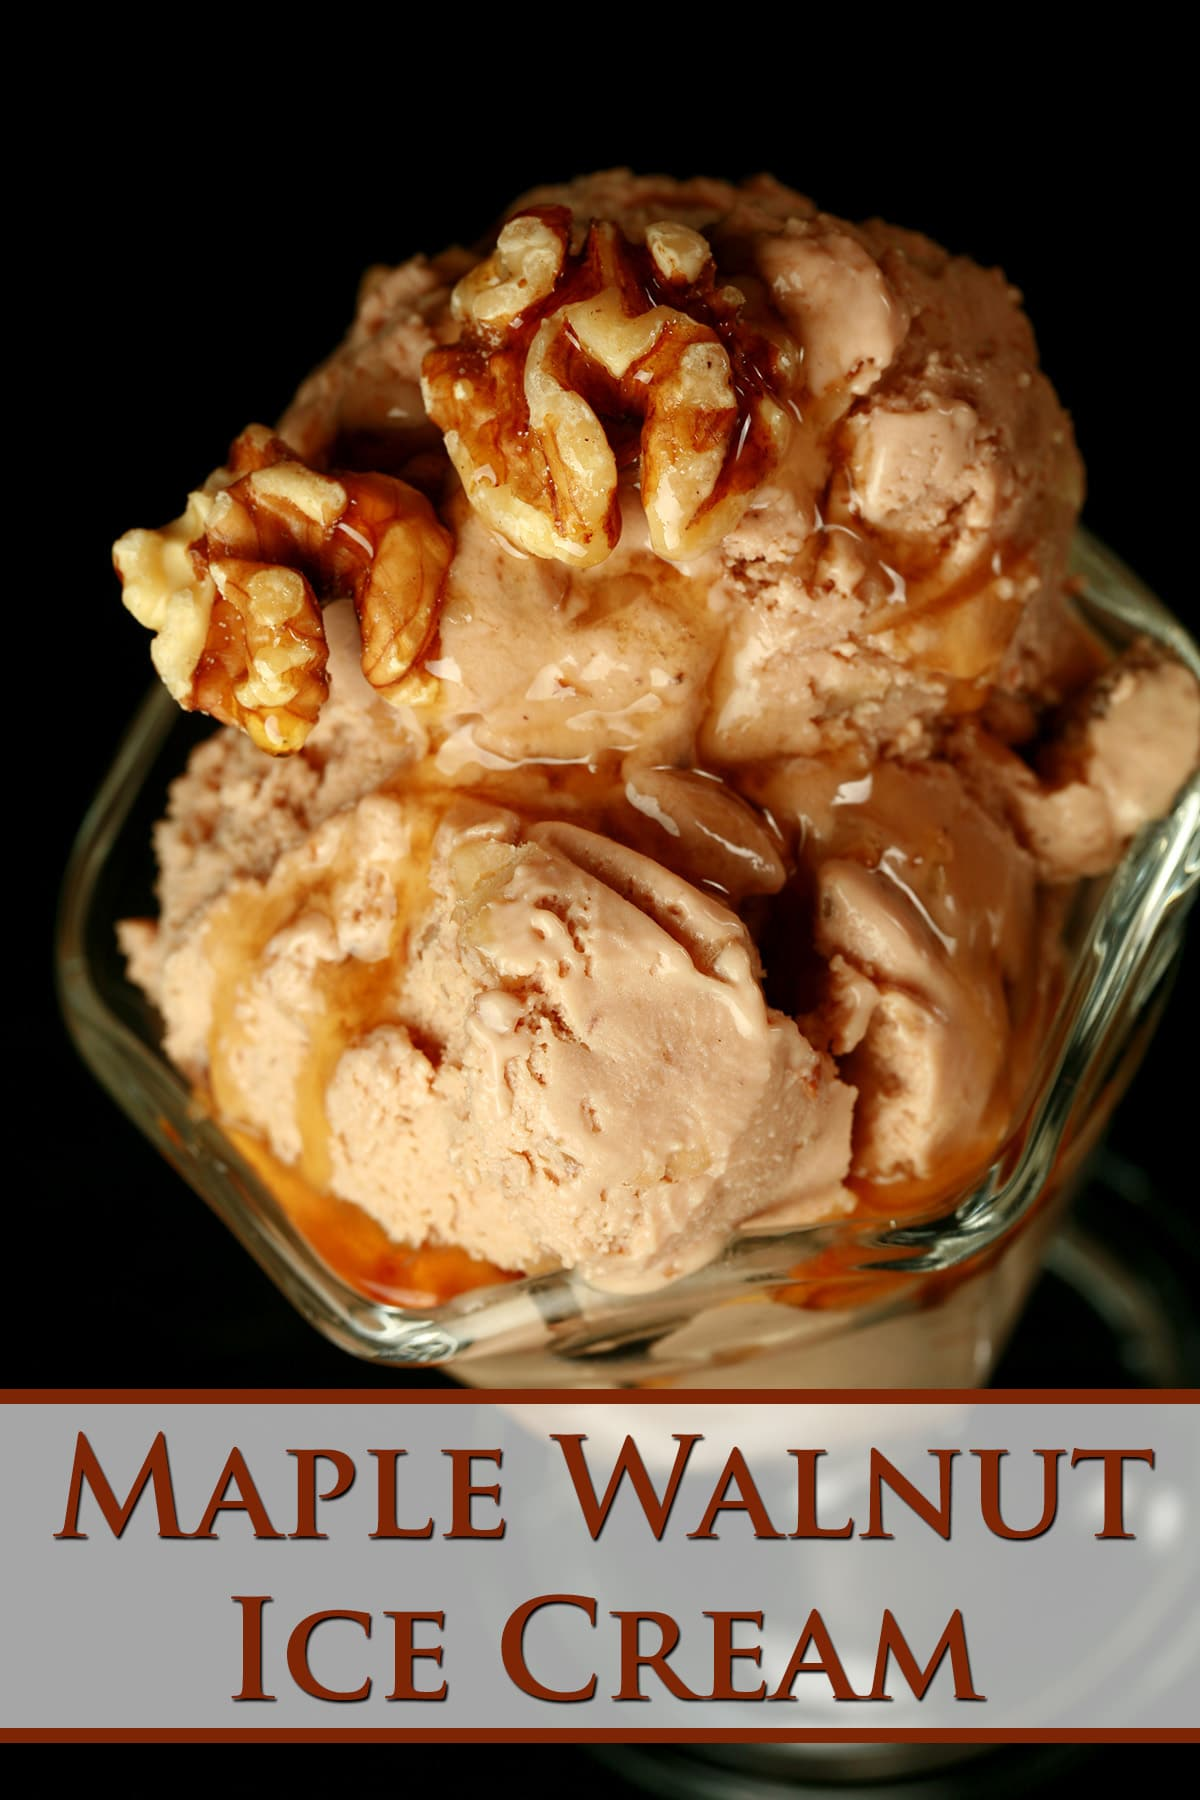 A glass dessert flute has several scoops of homemade maple walnut ice cream stacked in it. It has been drizzled with maple syrup and topped with toasted walnuts.